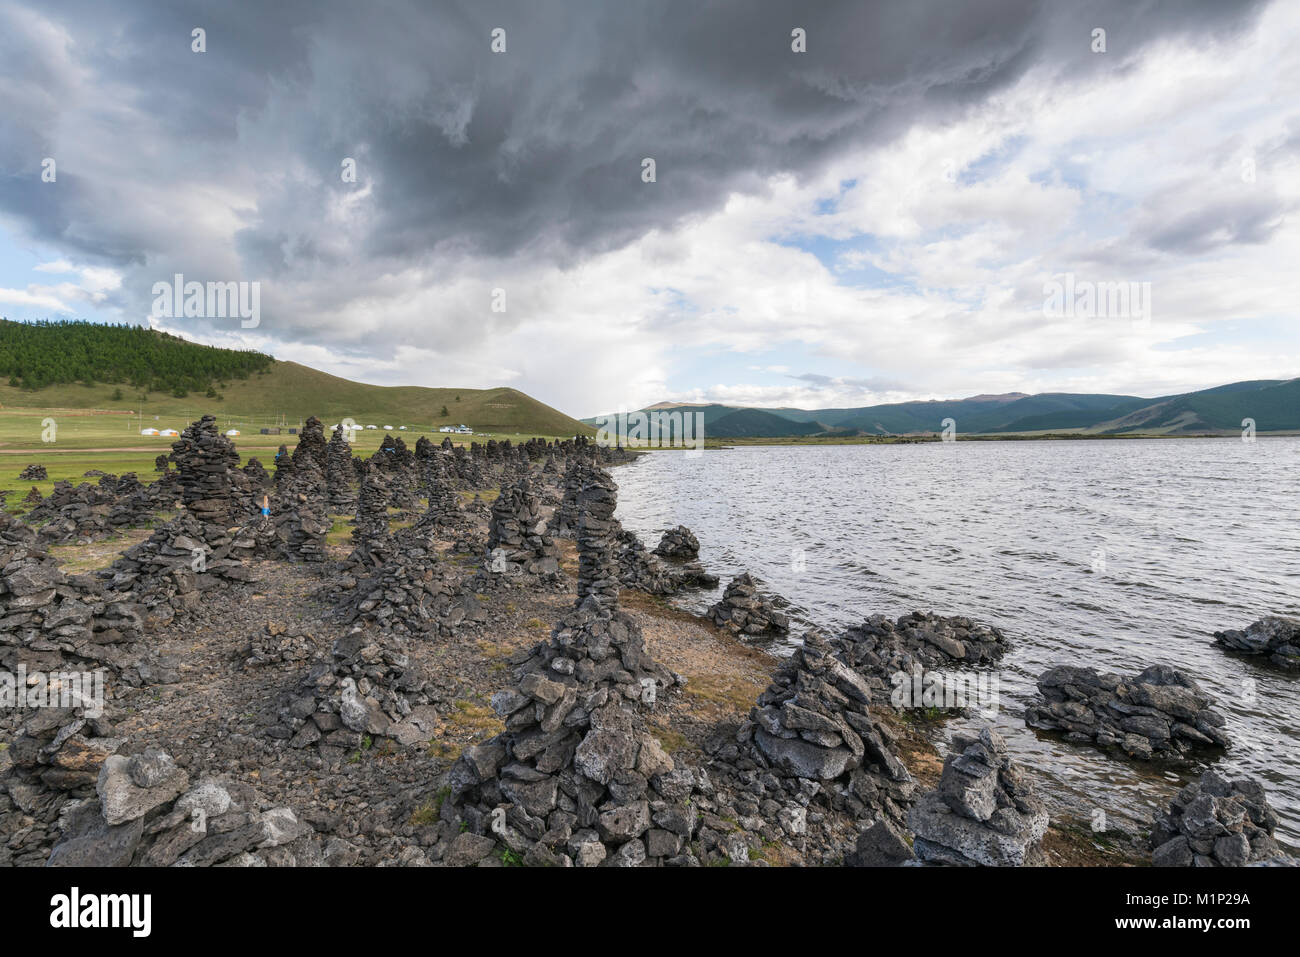 Volcanic rock formations on the shores of White Lake, Tariat district, North Hangay province, Mongolia, Central - Stock Image